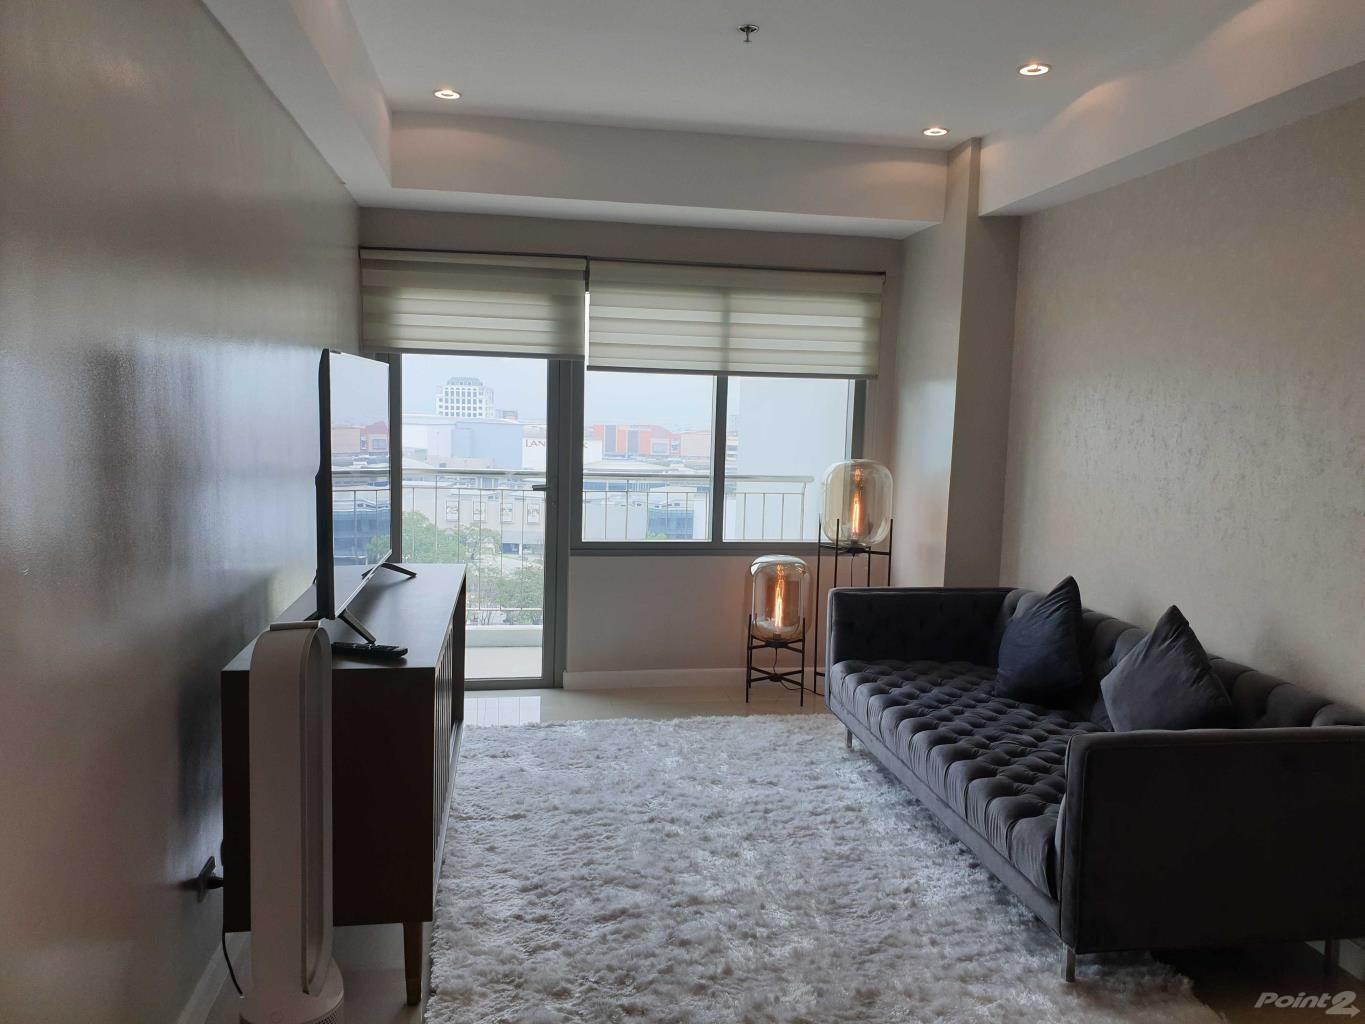 Wohnobjekte zur Miete in Fully Furnished 1 br in Bristol Parkway Place Alabang, Filinvest Corporate City, Metro Manila   , Philippinen